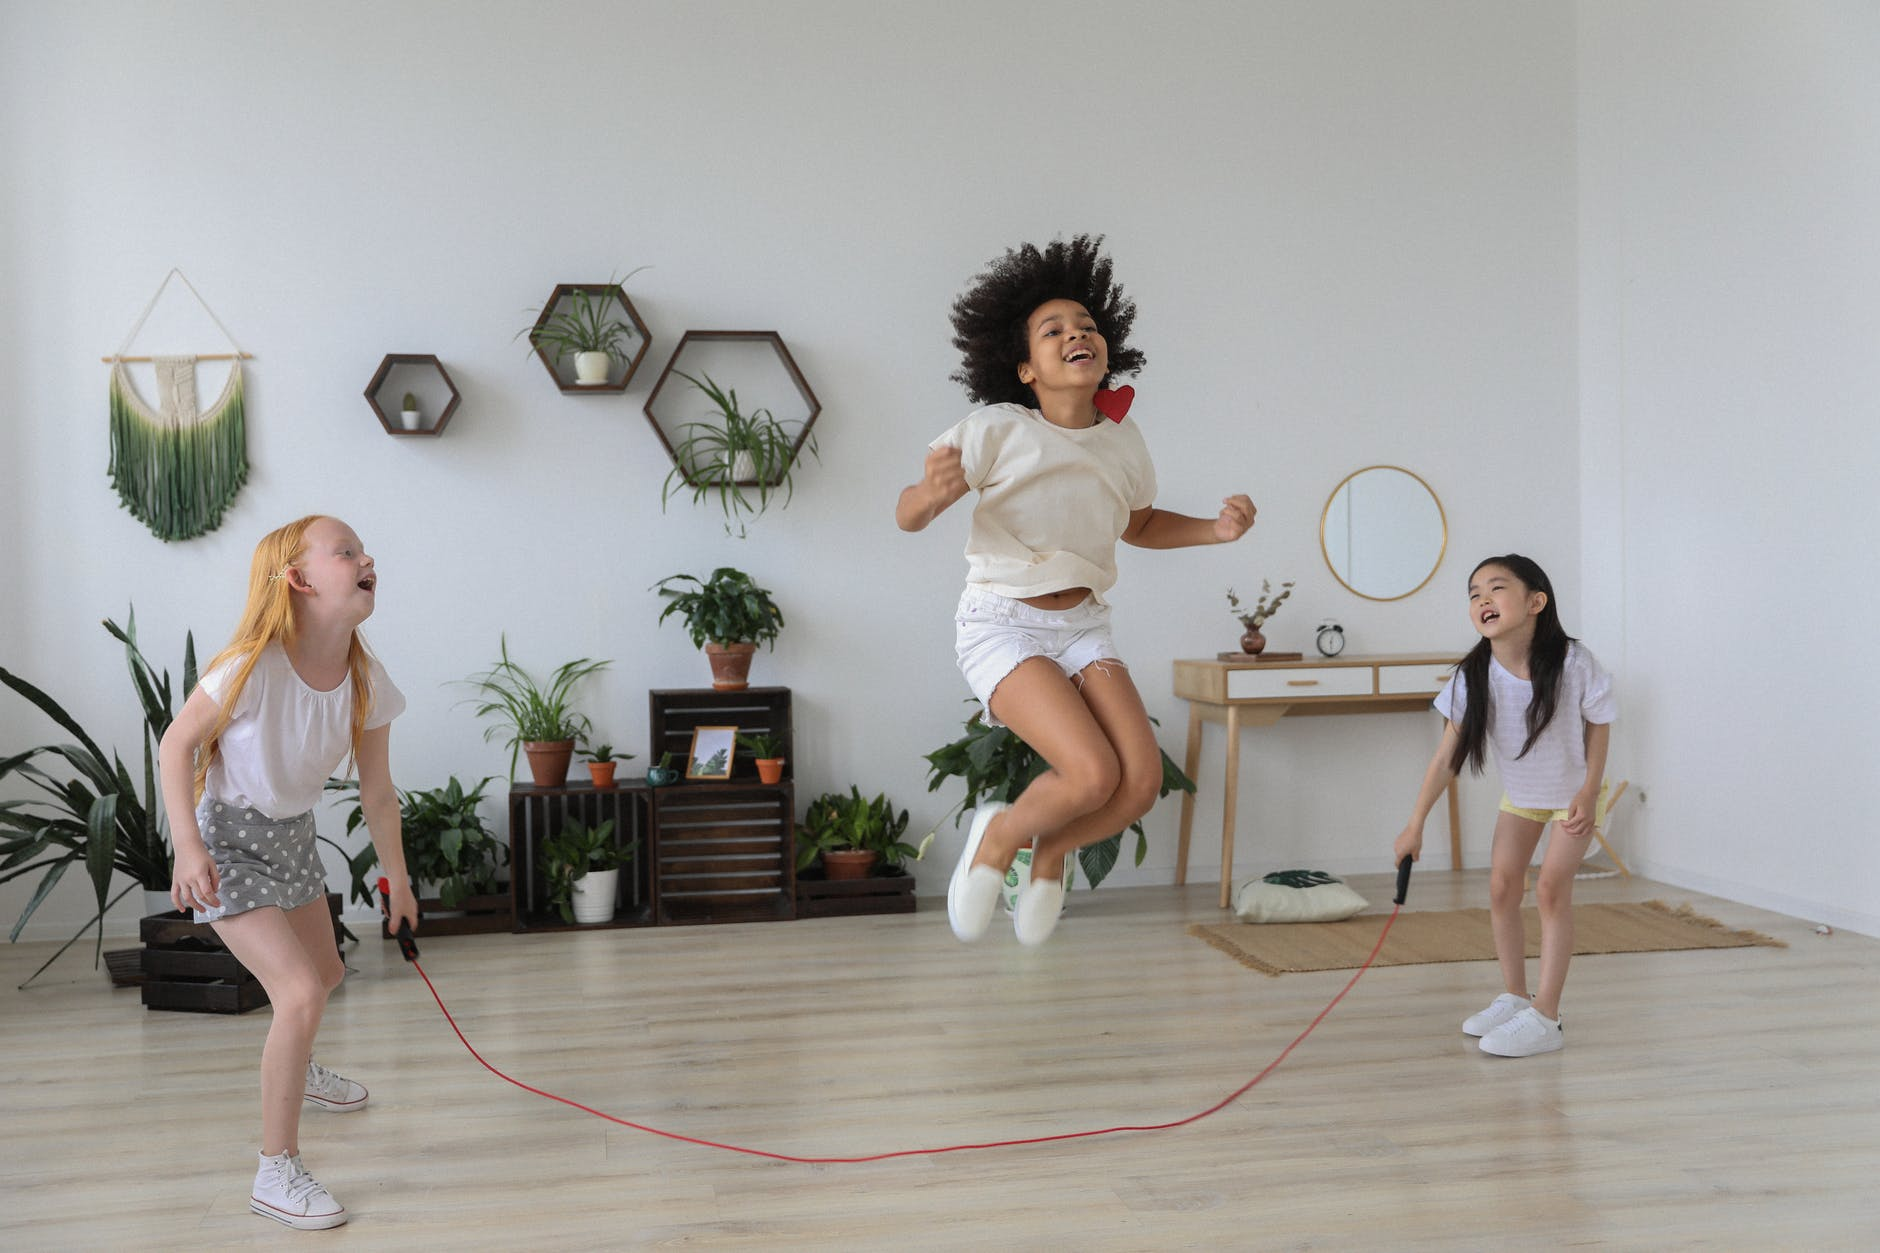 black girl jumping over rope while playing with friends